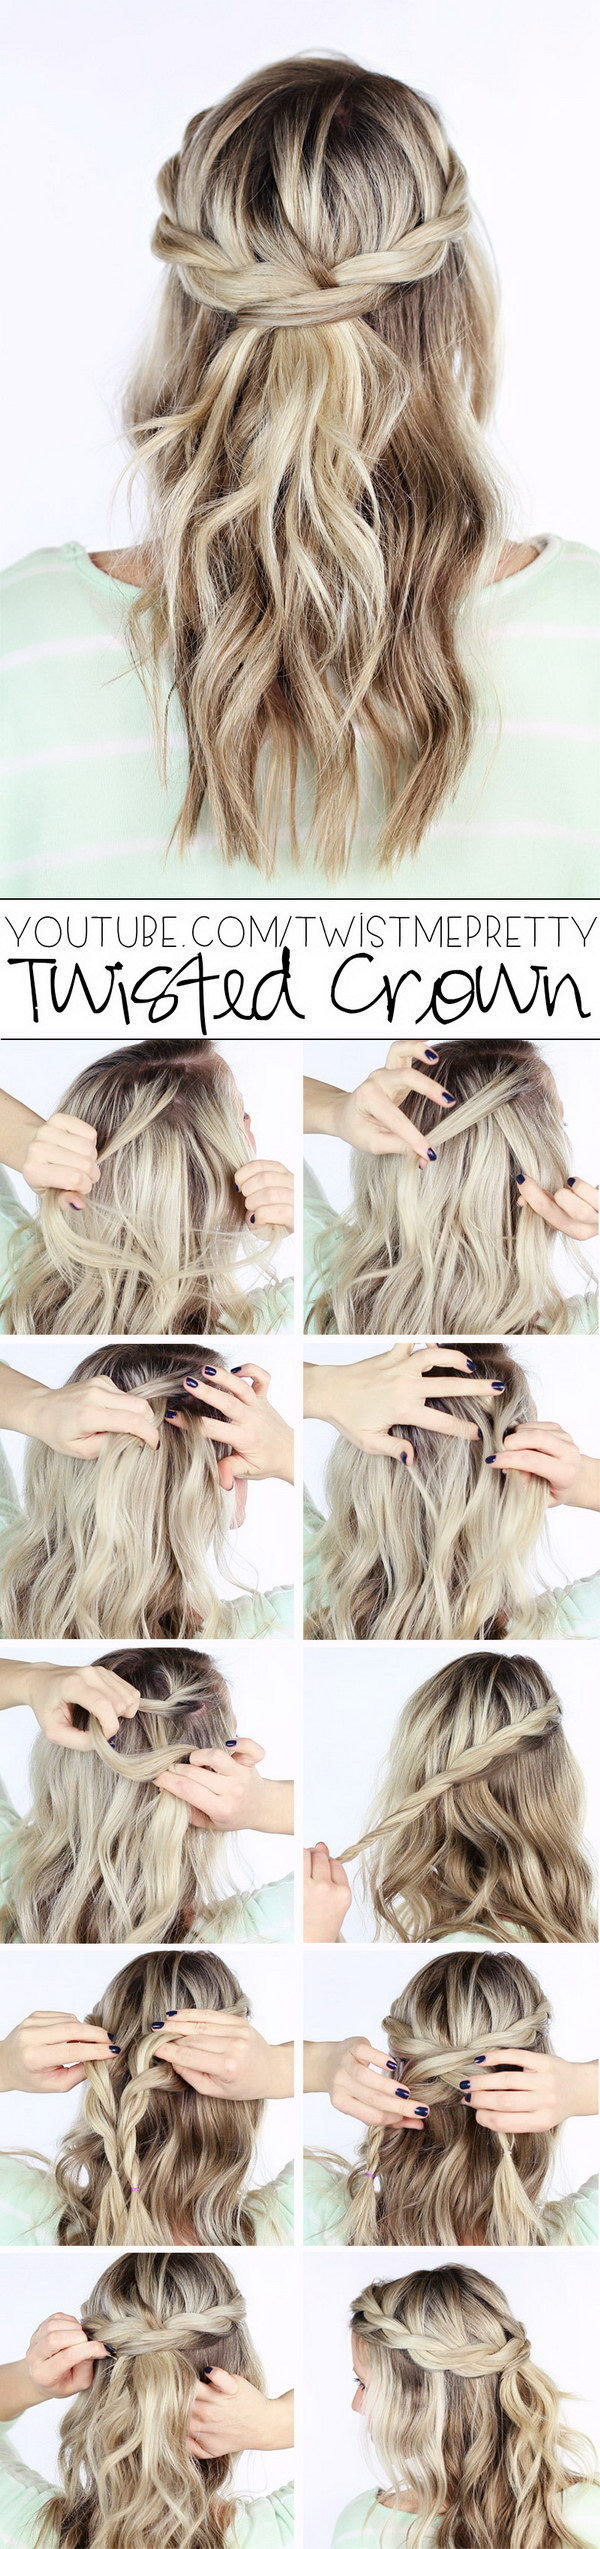 Twisted Crown Braid Hairstyle Tutorial.